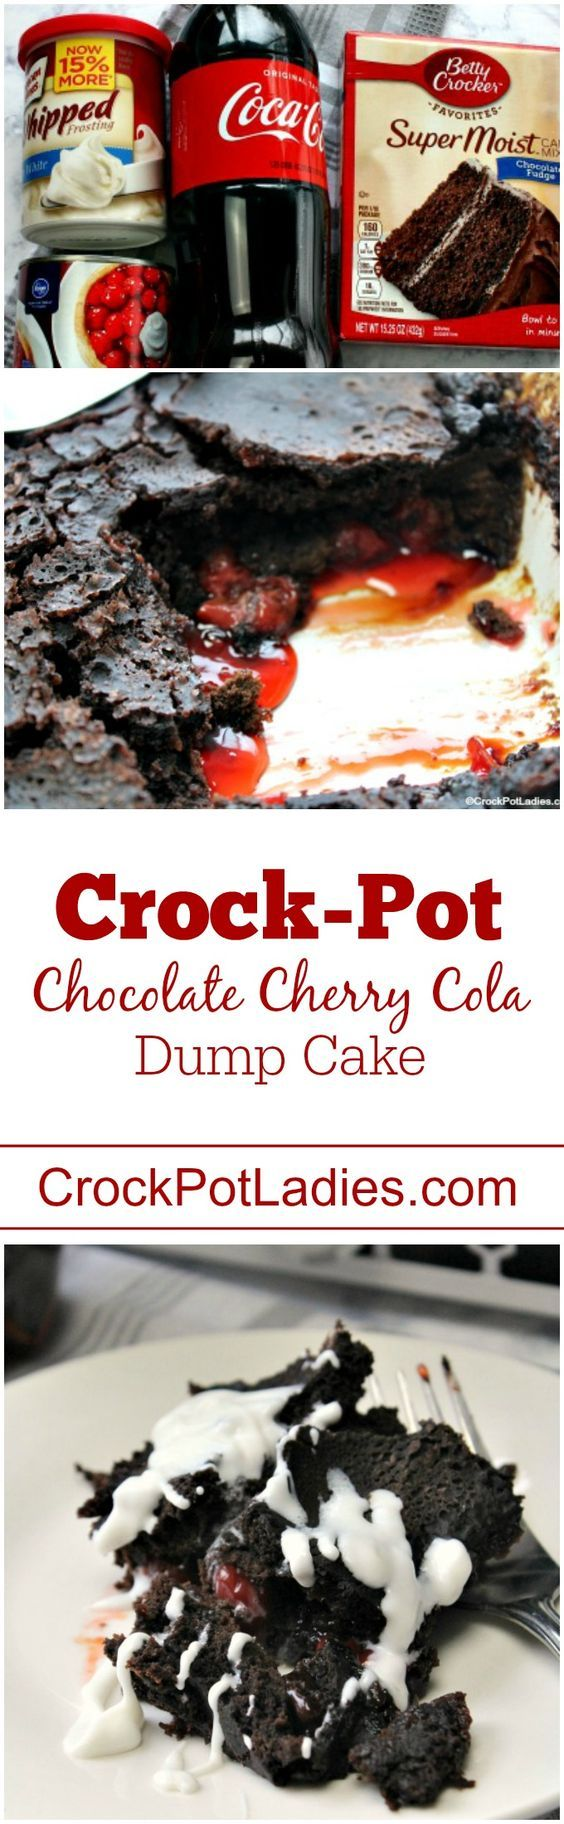 Crock-Pot Chocolate Cherry Cola Dump Cake - With just 4 ingredients this easy to make dessert recipe for Crock-Pot Chocolate Cherry Cola Dump Cake could not be simpler to make and the flavor is out of this world! A box of chocolate cake mix, a can of cola, a can of cherry pie filling and cream cheese icing is all you need for this slow cooker dessert! #CrockPot #SlowCooker #Recipe #ValentinesDay #Chocolate #Cherry #Dessert #LowFat #LowSodium #Vegetarian via @CrockPotLadies